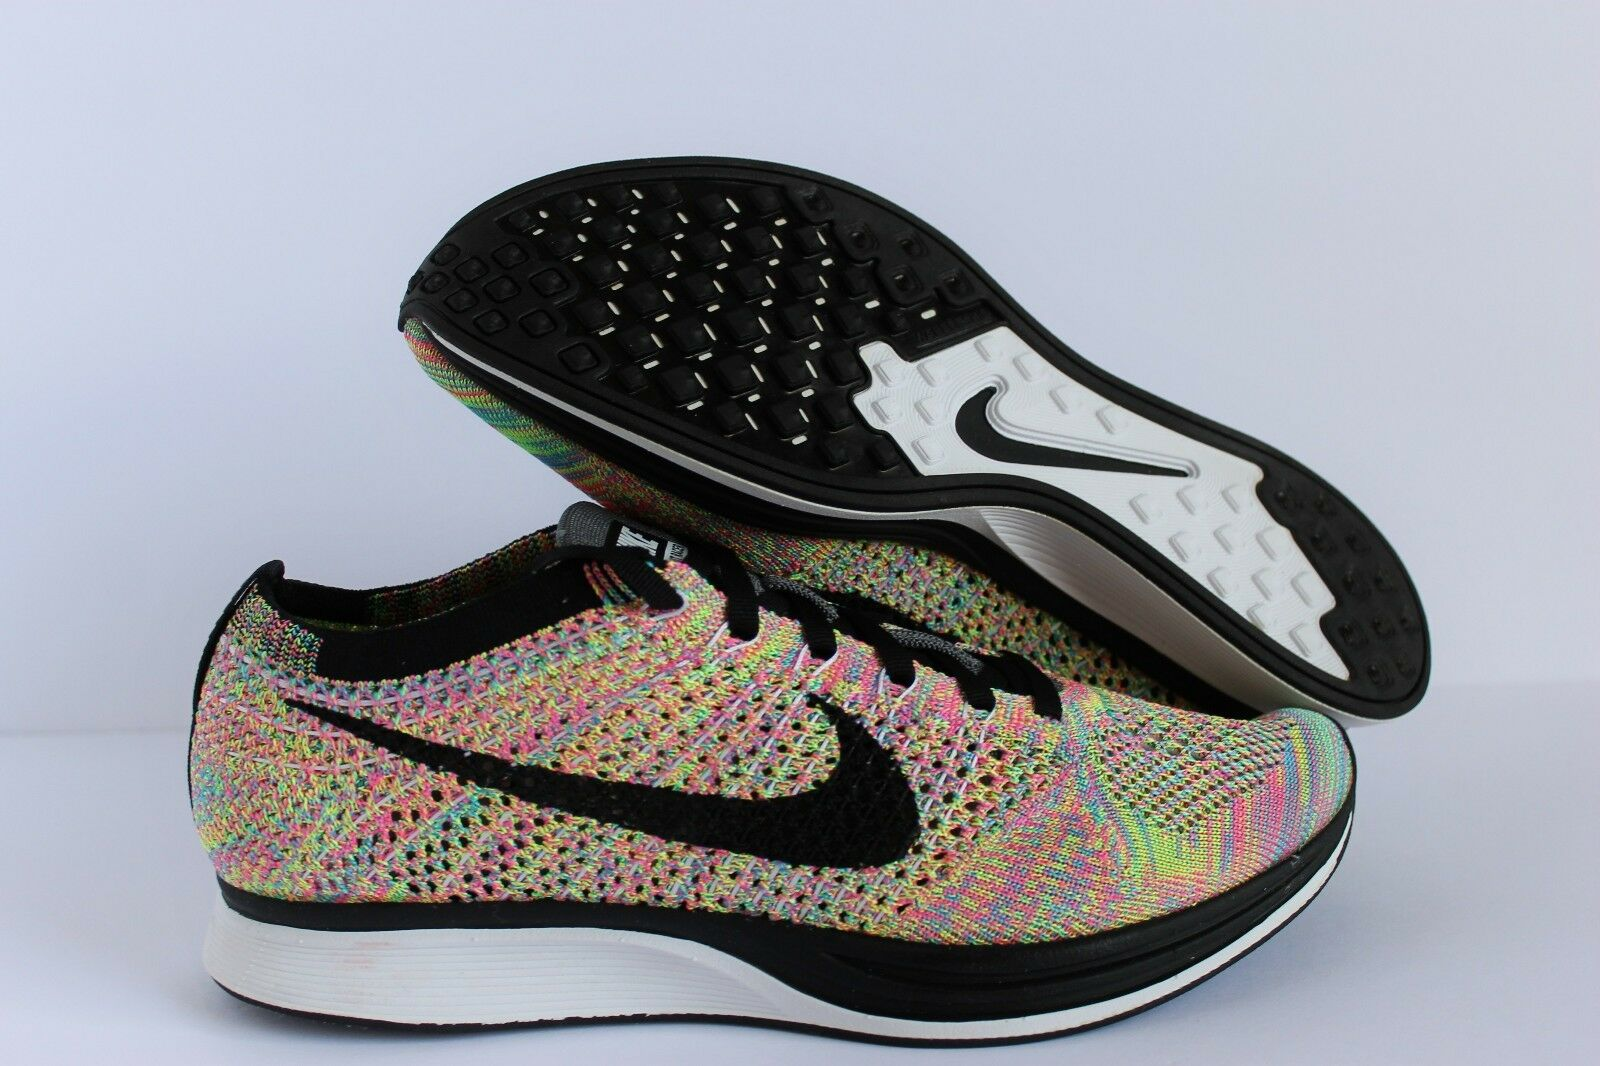 NIKE Hombres FLYKNIT RACER Multi-Color Negro    Mujeres [526628-004]